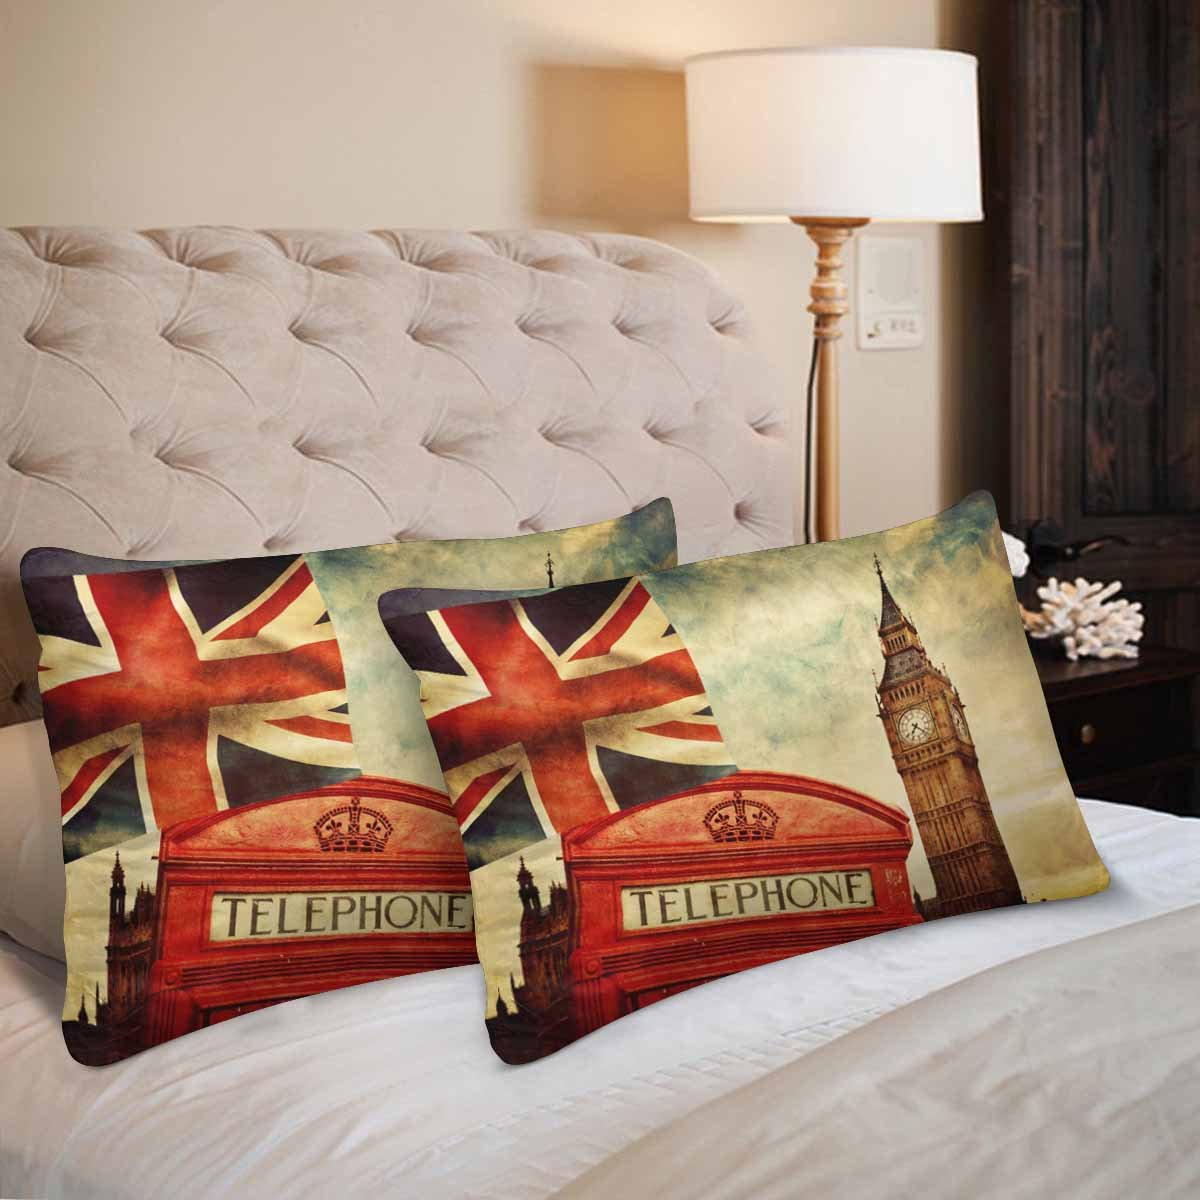 InterestPrint London Red Telephone Booth Big Ben National Flag Union Jack Pillow Cases Pillowcase Queen Size 20x30 Set of 2 Rectangle Pillow Covers Protector for Home Couch Sofa Bedroom Decoration